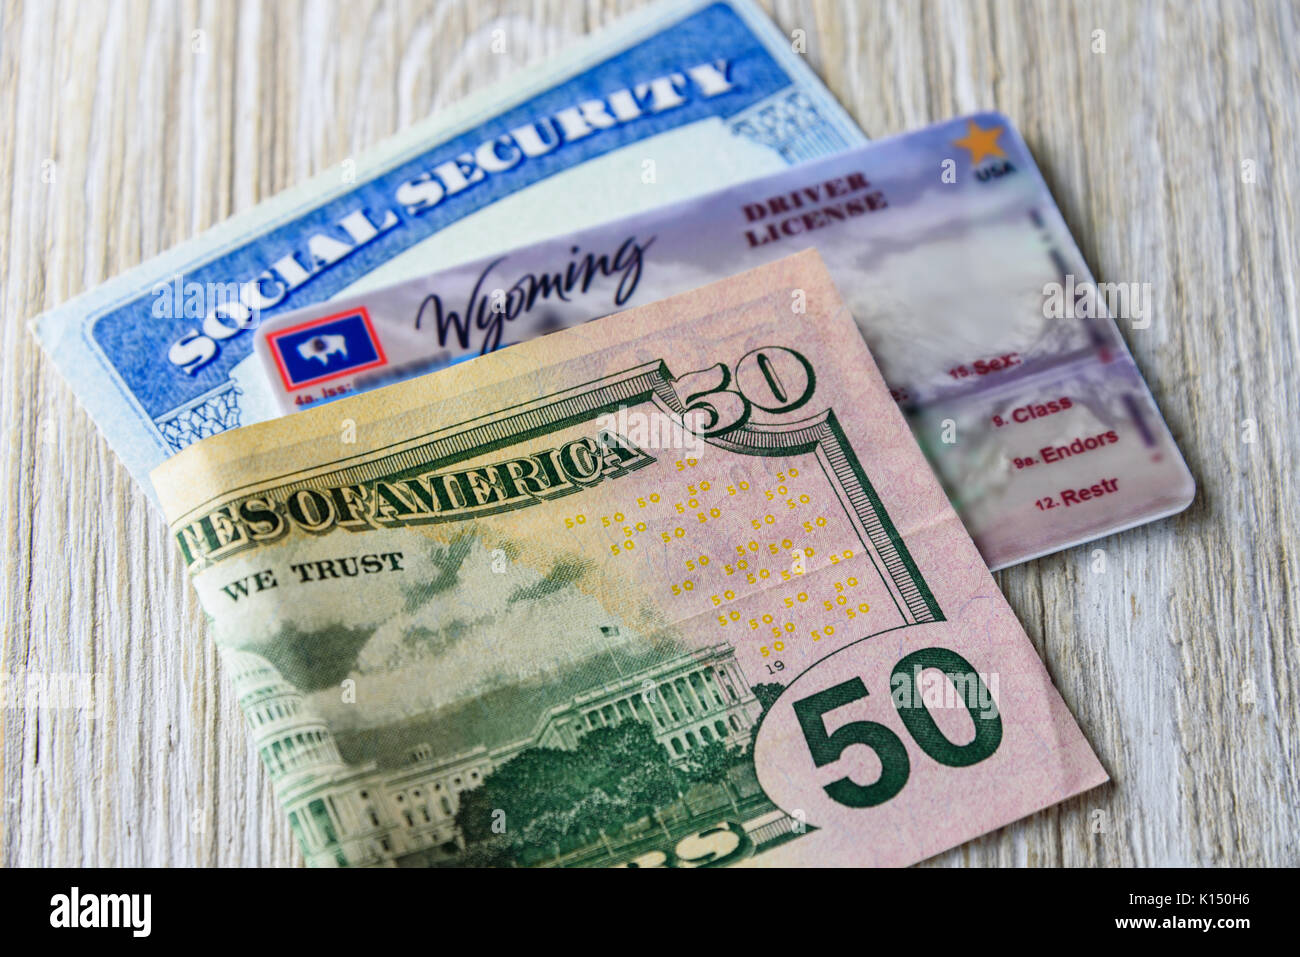 New driver license fee in Wyoming USA. Any class CDL (Commercial Driver License) - Stock Image